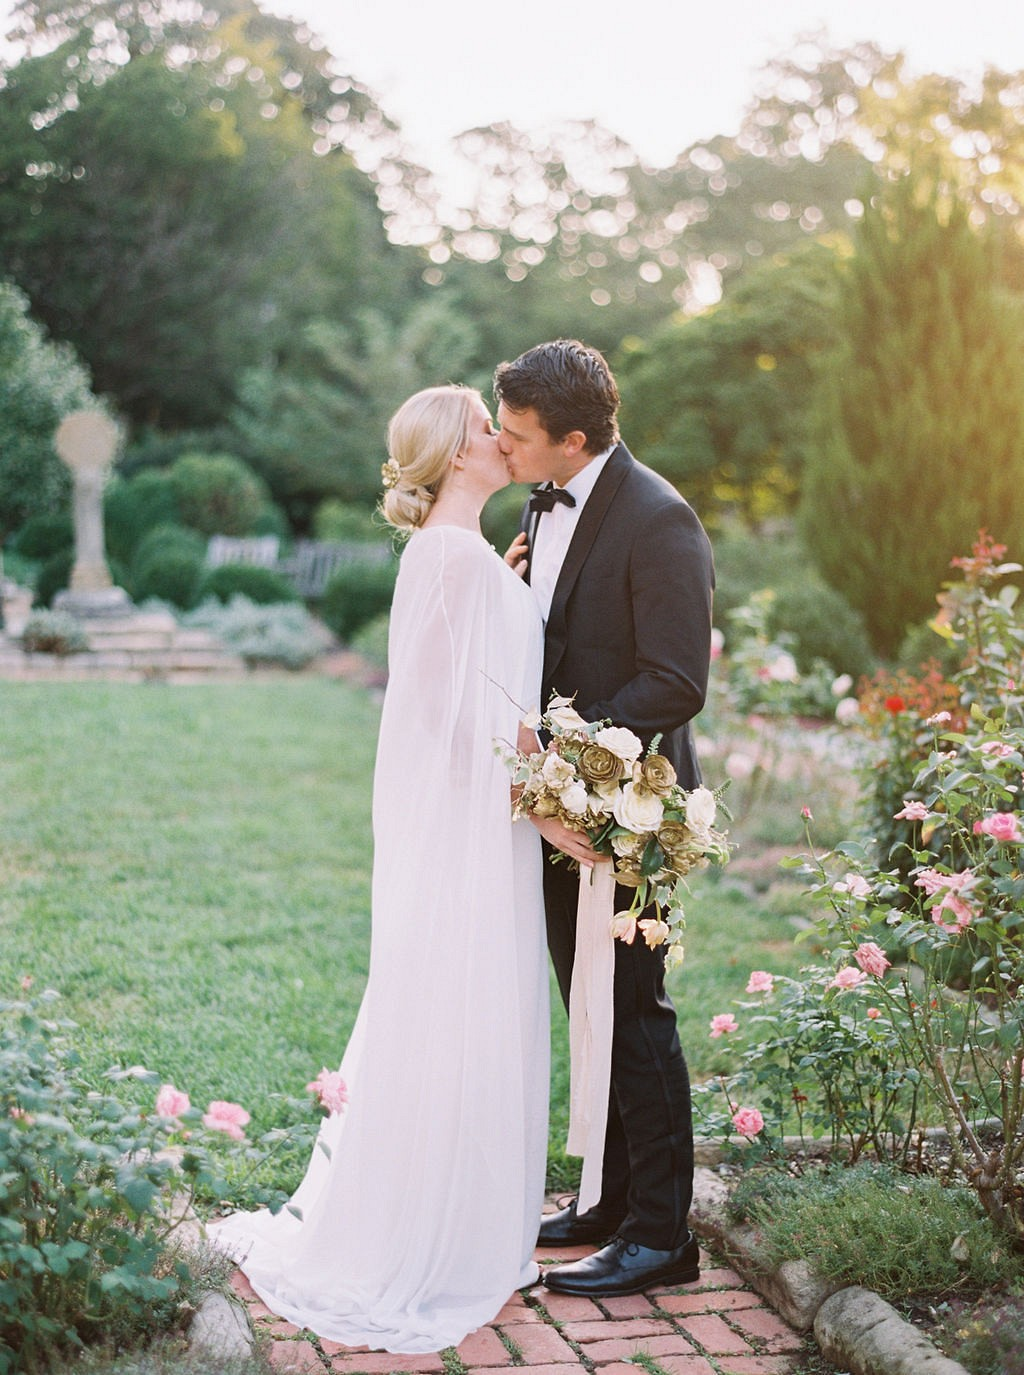 Golden and Gilded - Wedding Ideas